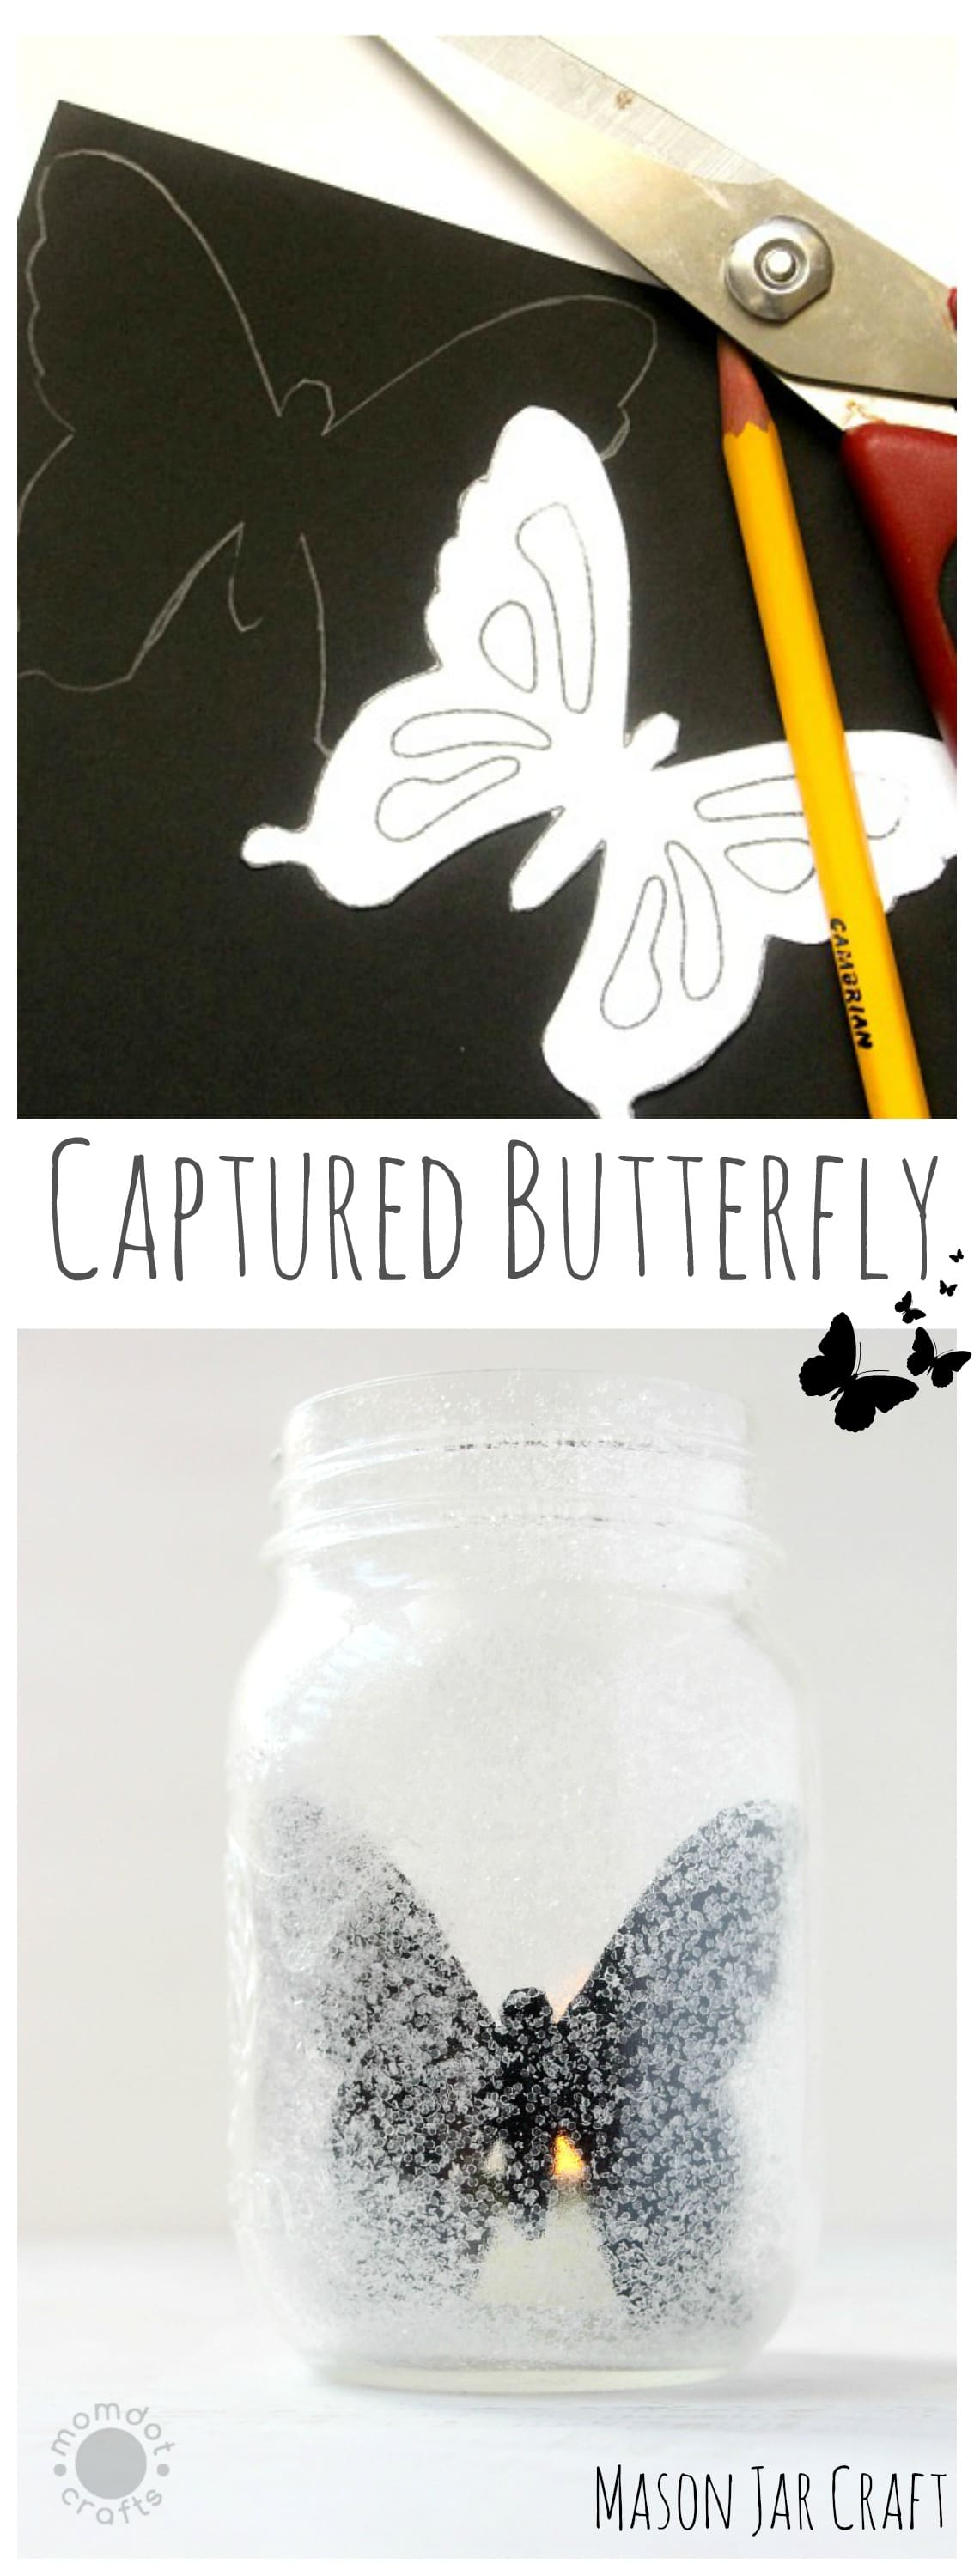 """Captured Butterfly : Mason Jar Craft Idea - Enjoy a Butterfly year round and the flickering light makes it seem """"alive""""! Mason Jar tuturial"""